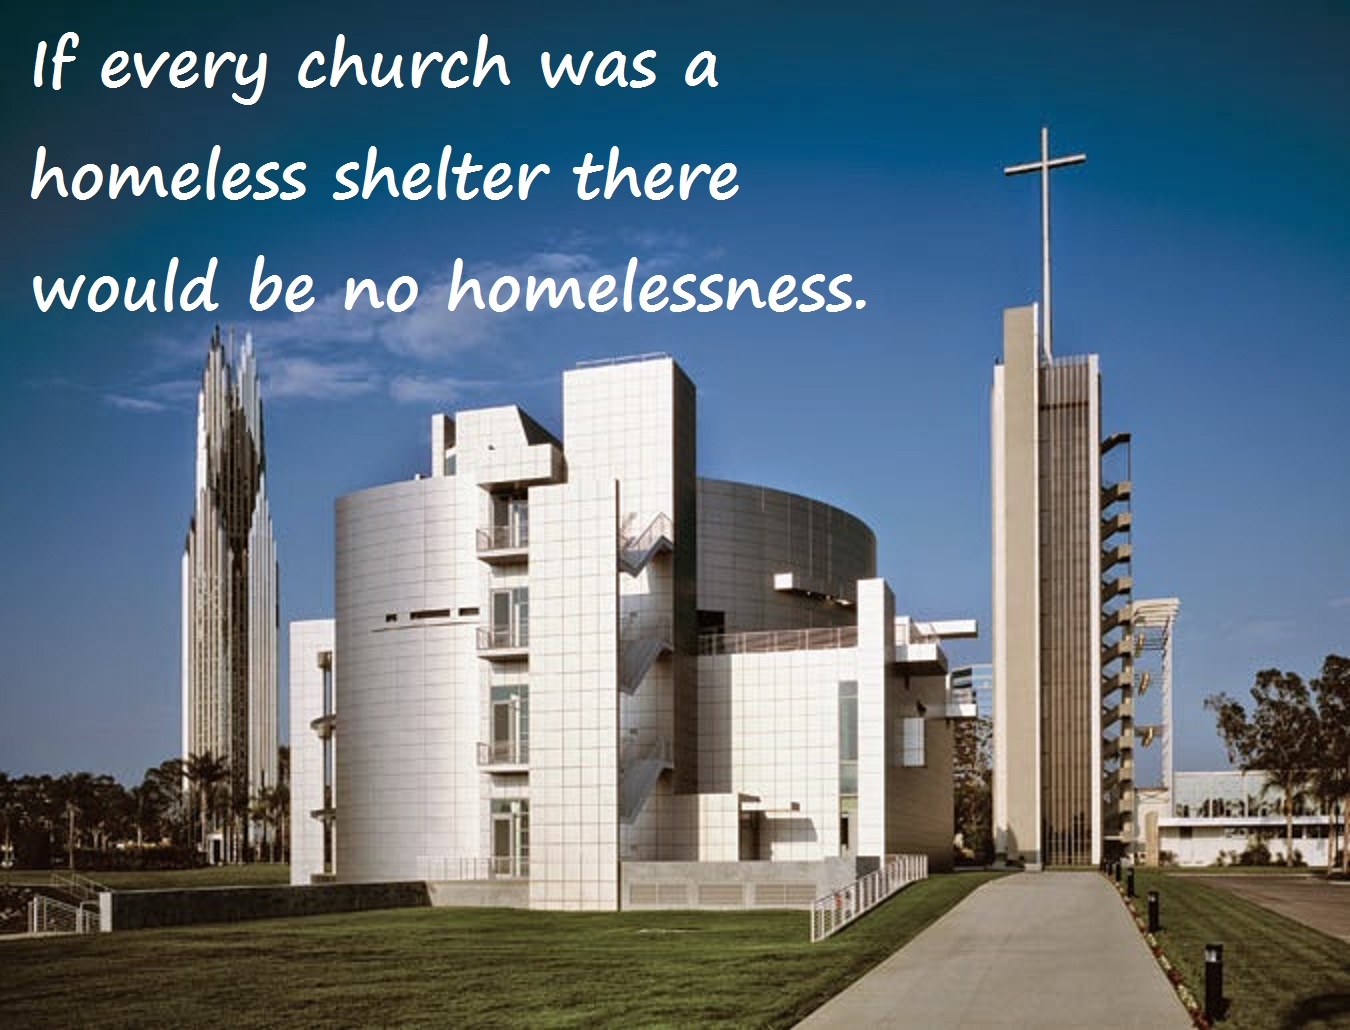 If every church was a homeless shelter there would be no homelessness.